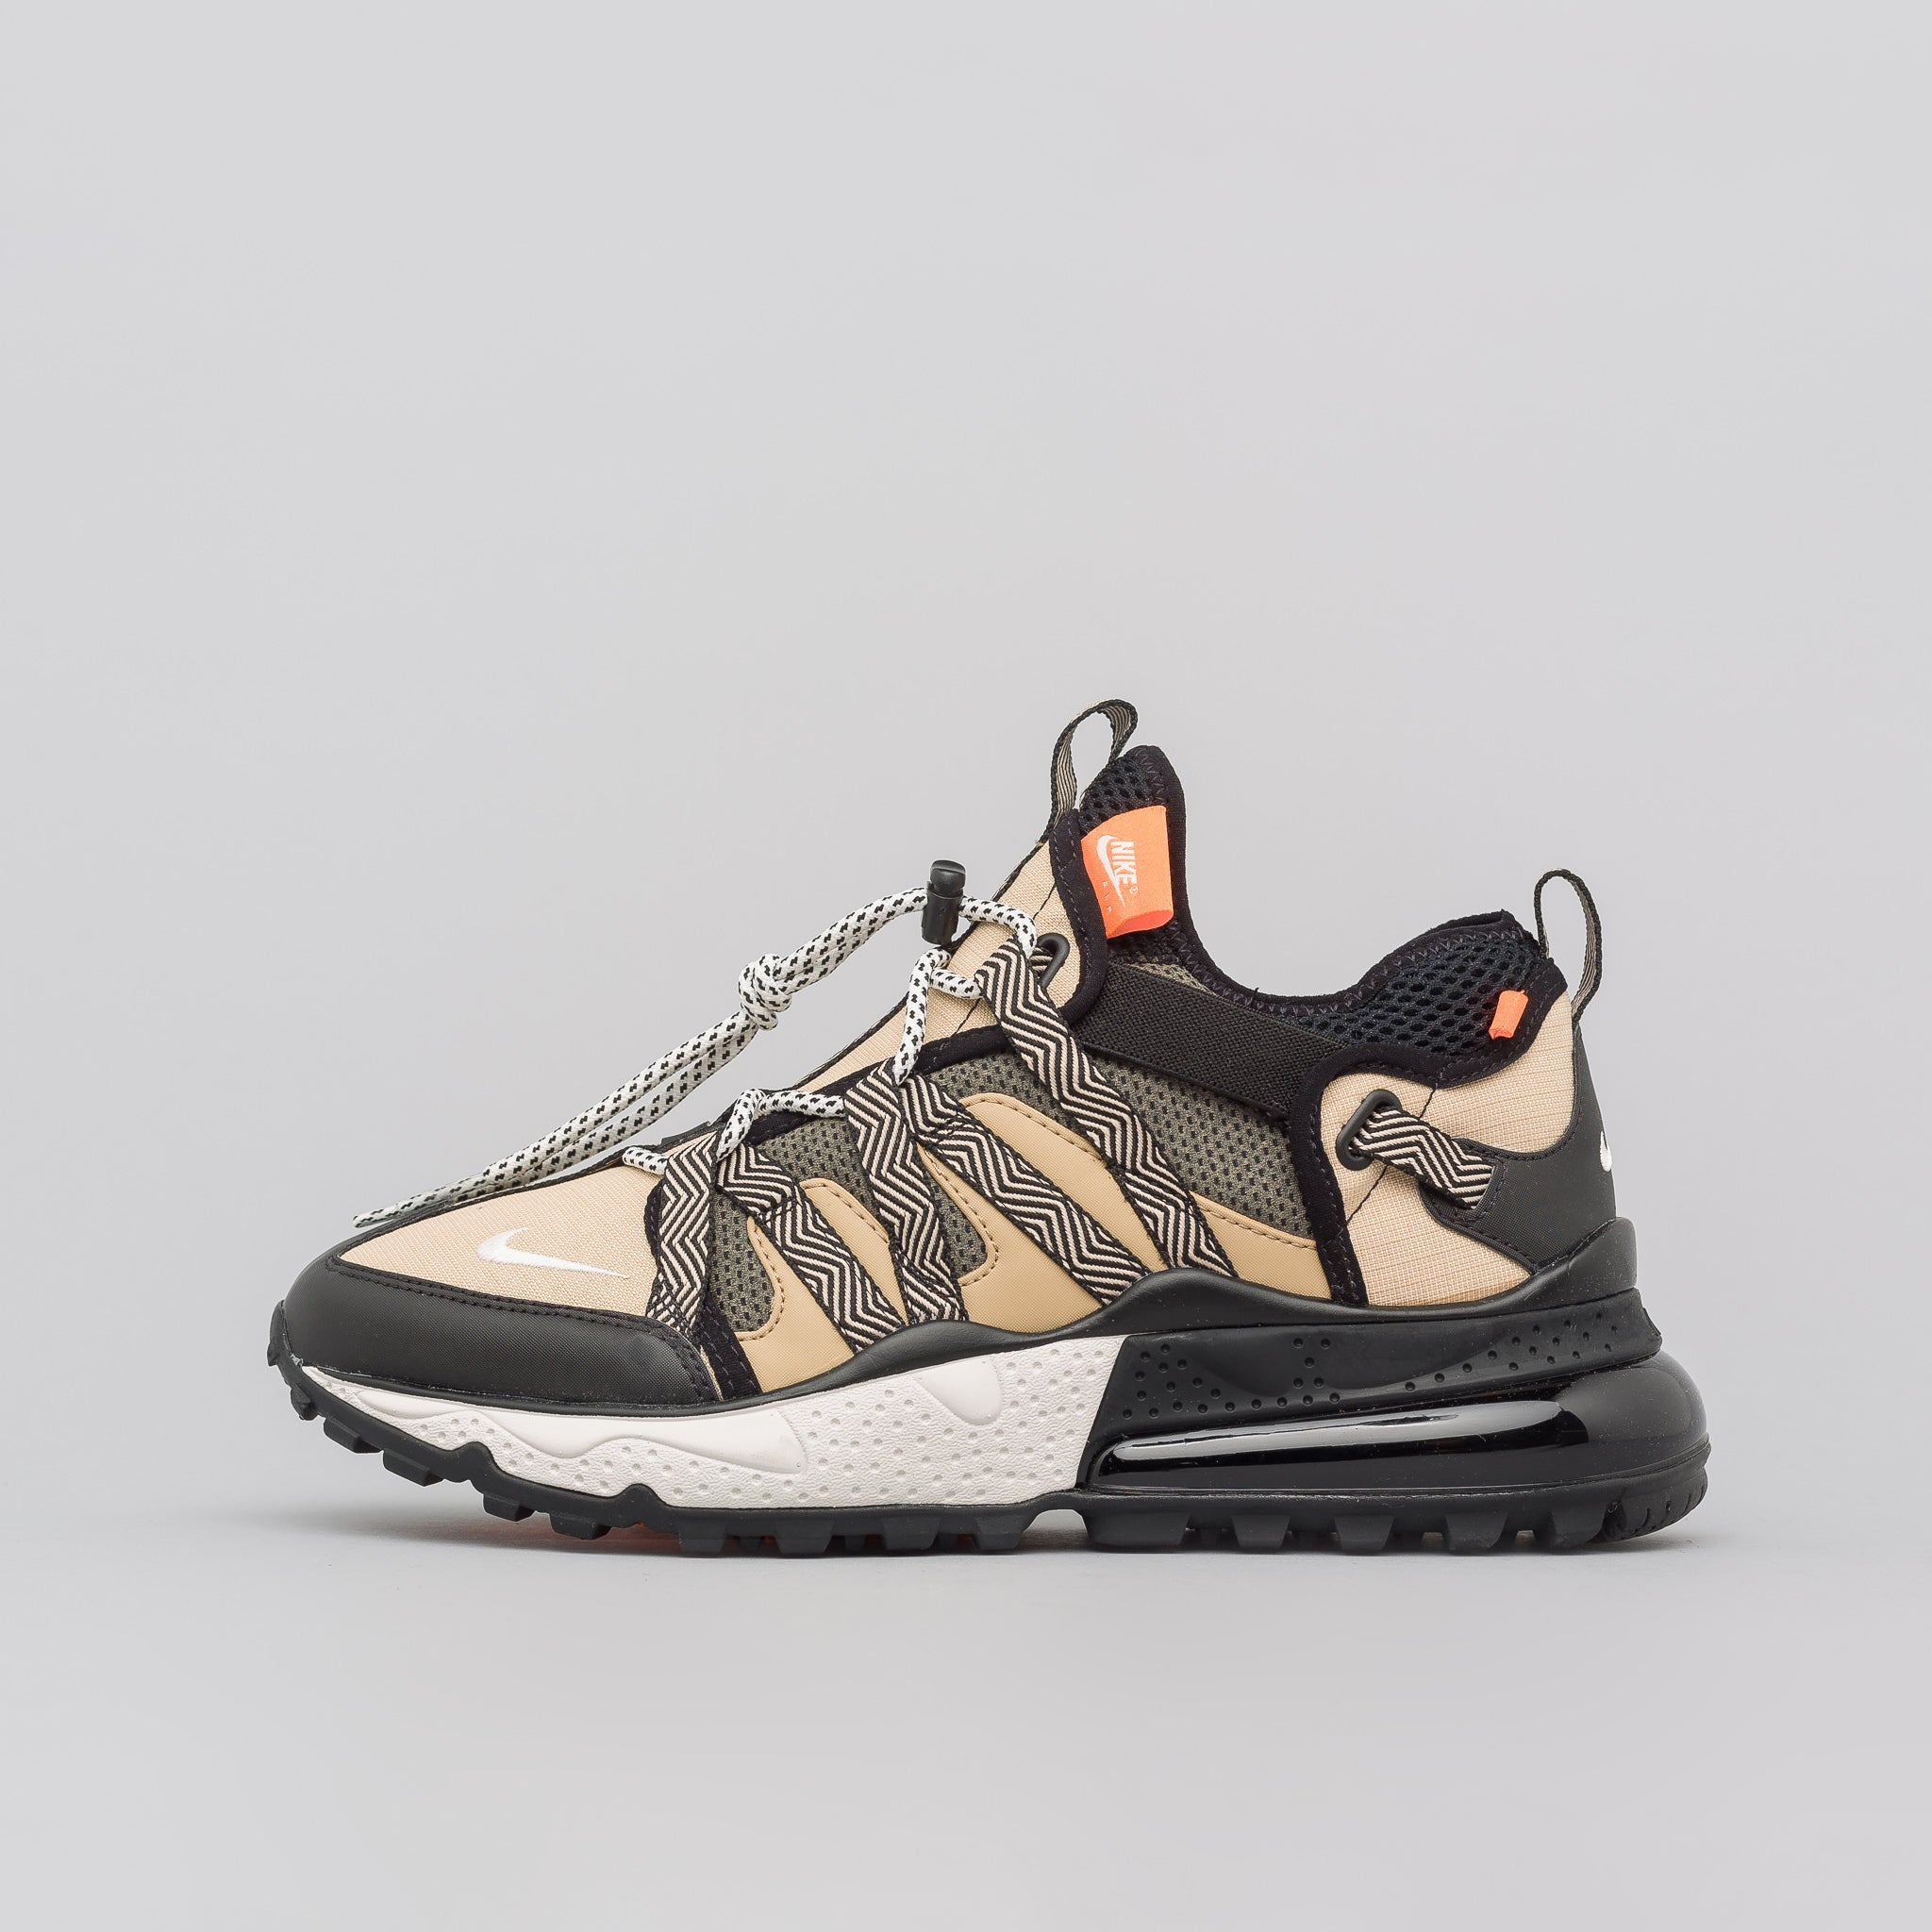 Air Max 270 Bowfin in Black/Desert